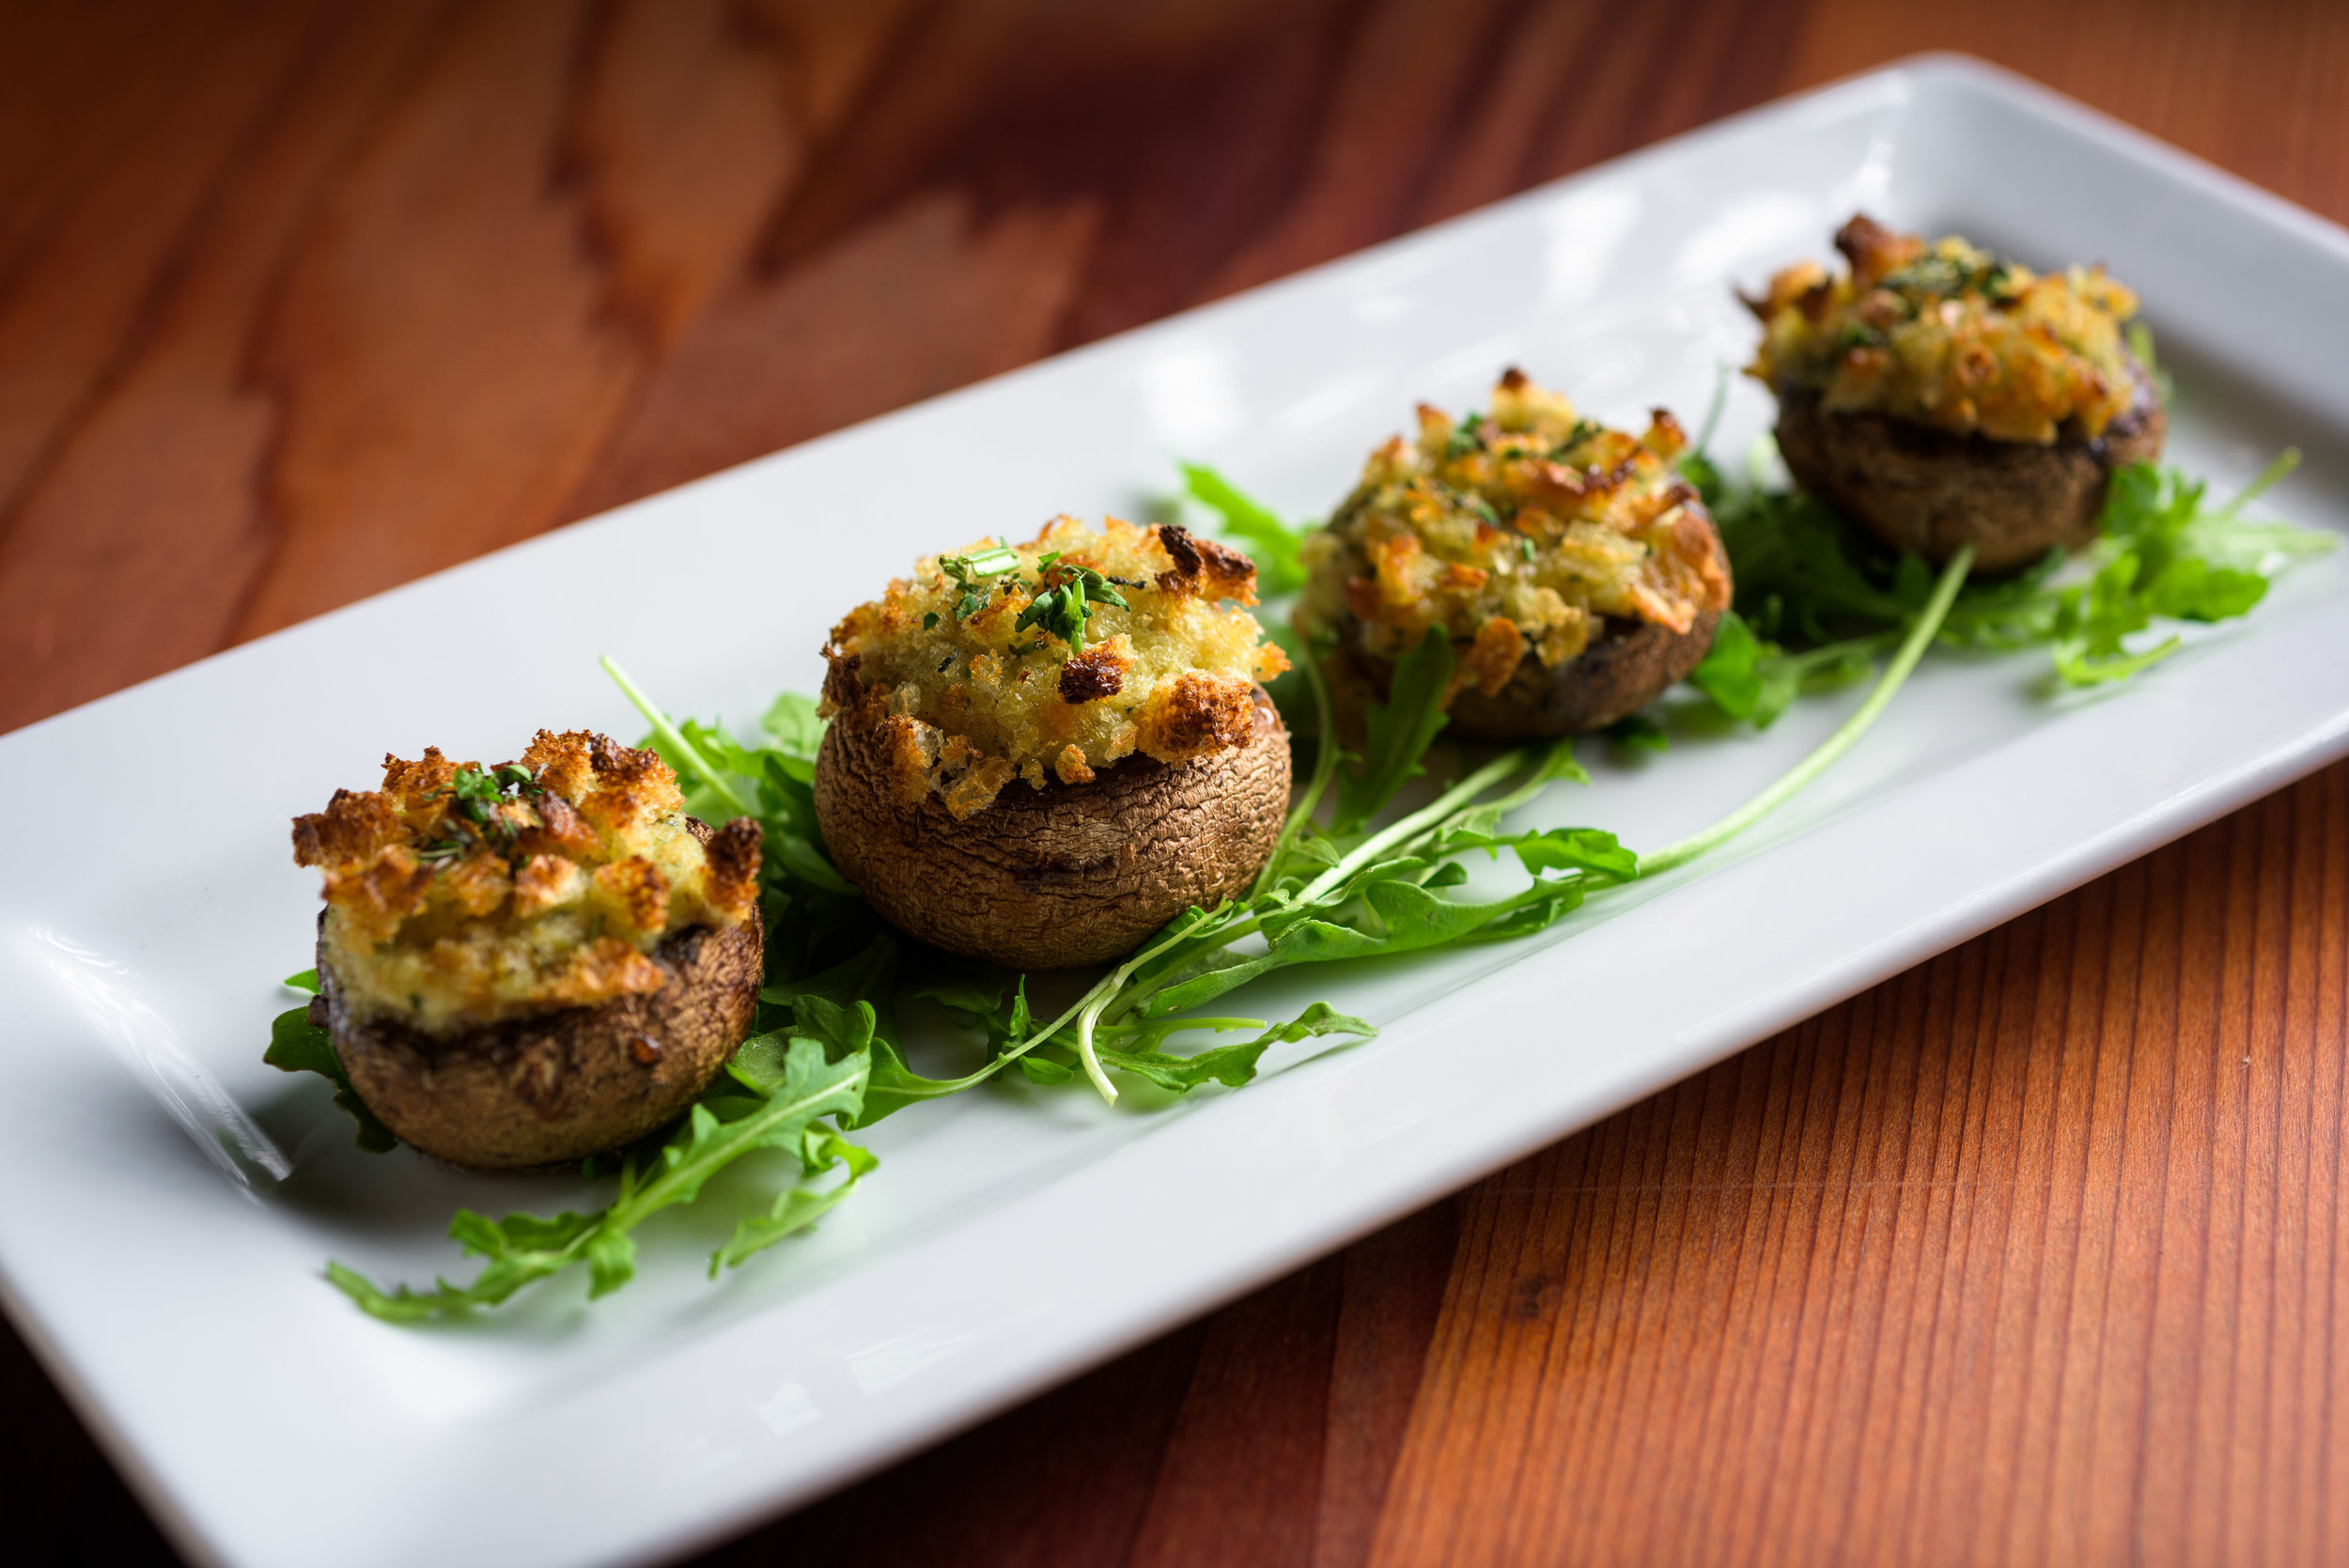 closeup of stuffed mushroom appetizer - Cupertino food photography - RootStock Wine Bar - photos by Bay Area commercial photographer Chris Schmauch